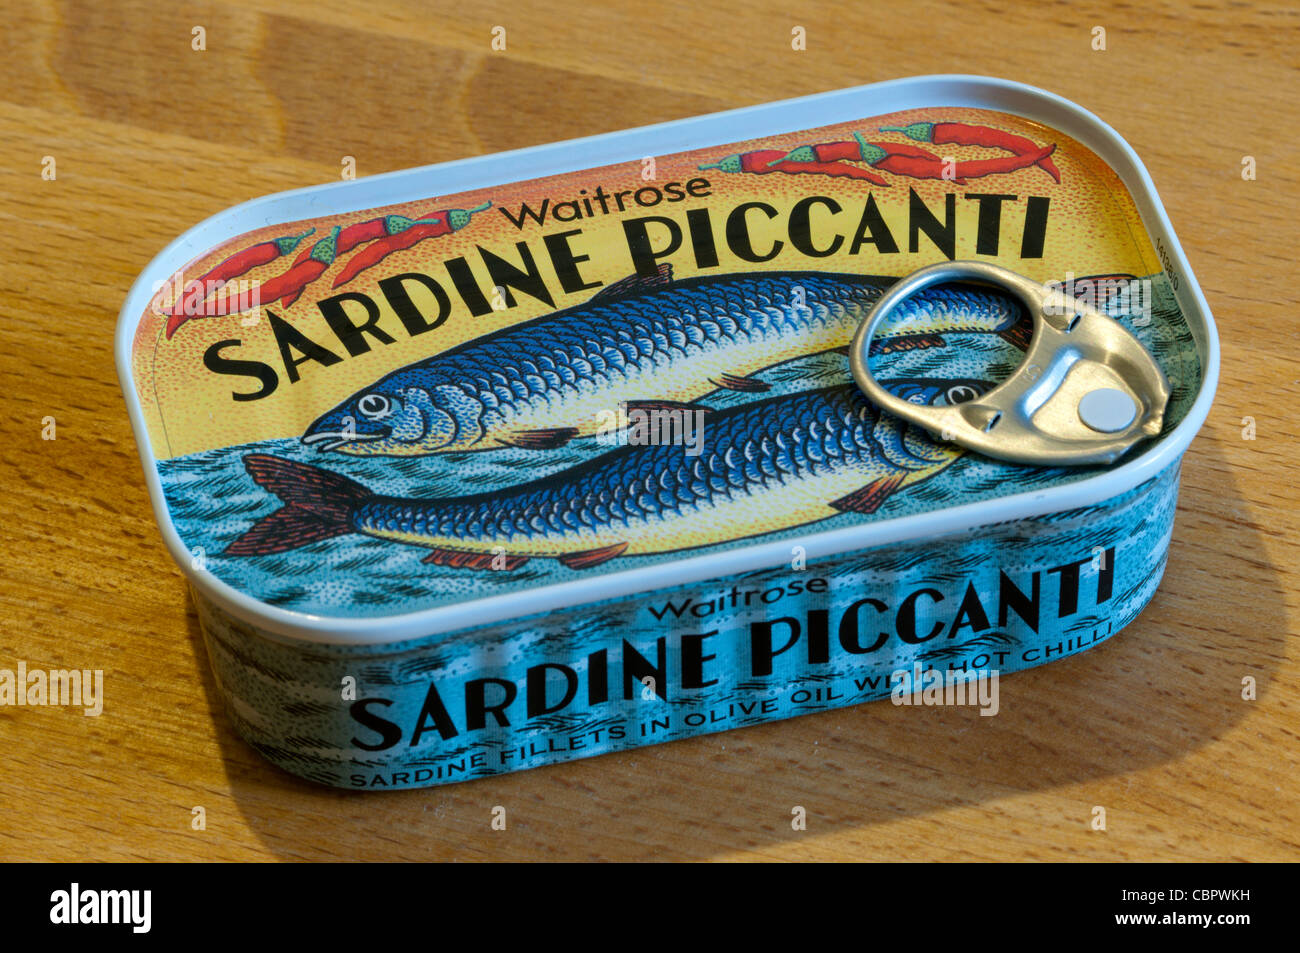 An unopened tin of Waitrose Sardine Piccanti - sardine fillets in olive oil with hot chilli. - Stock Image